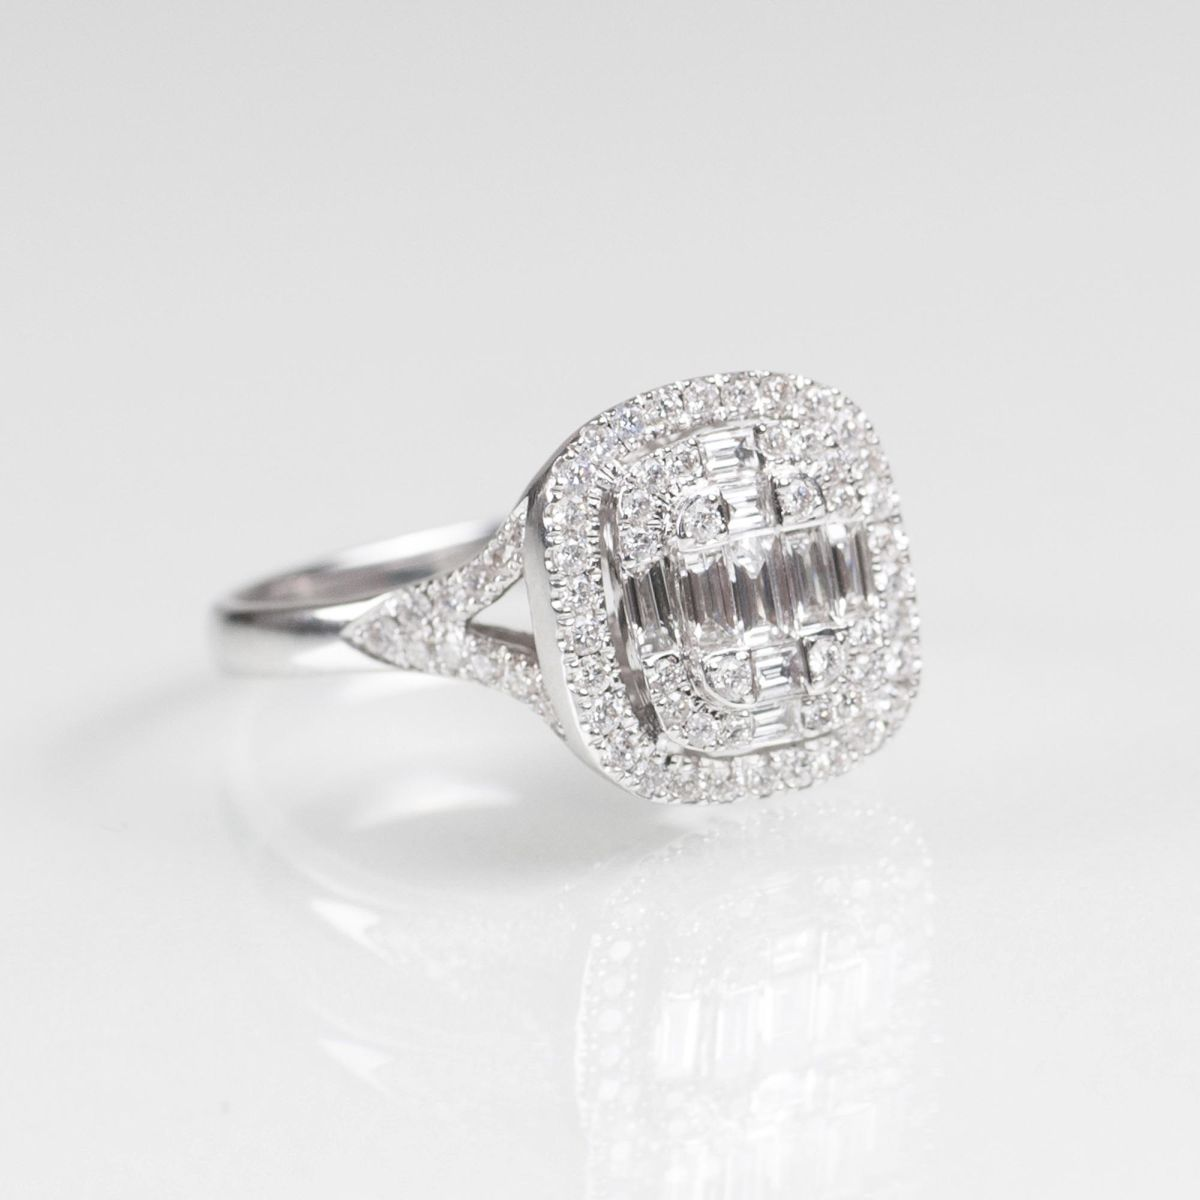 Diamant-Brillant-Ring  - Bild 2